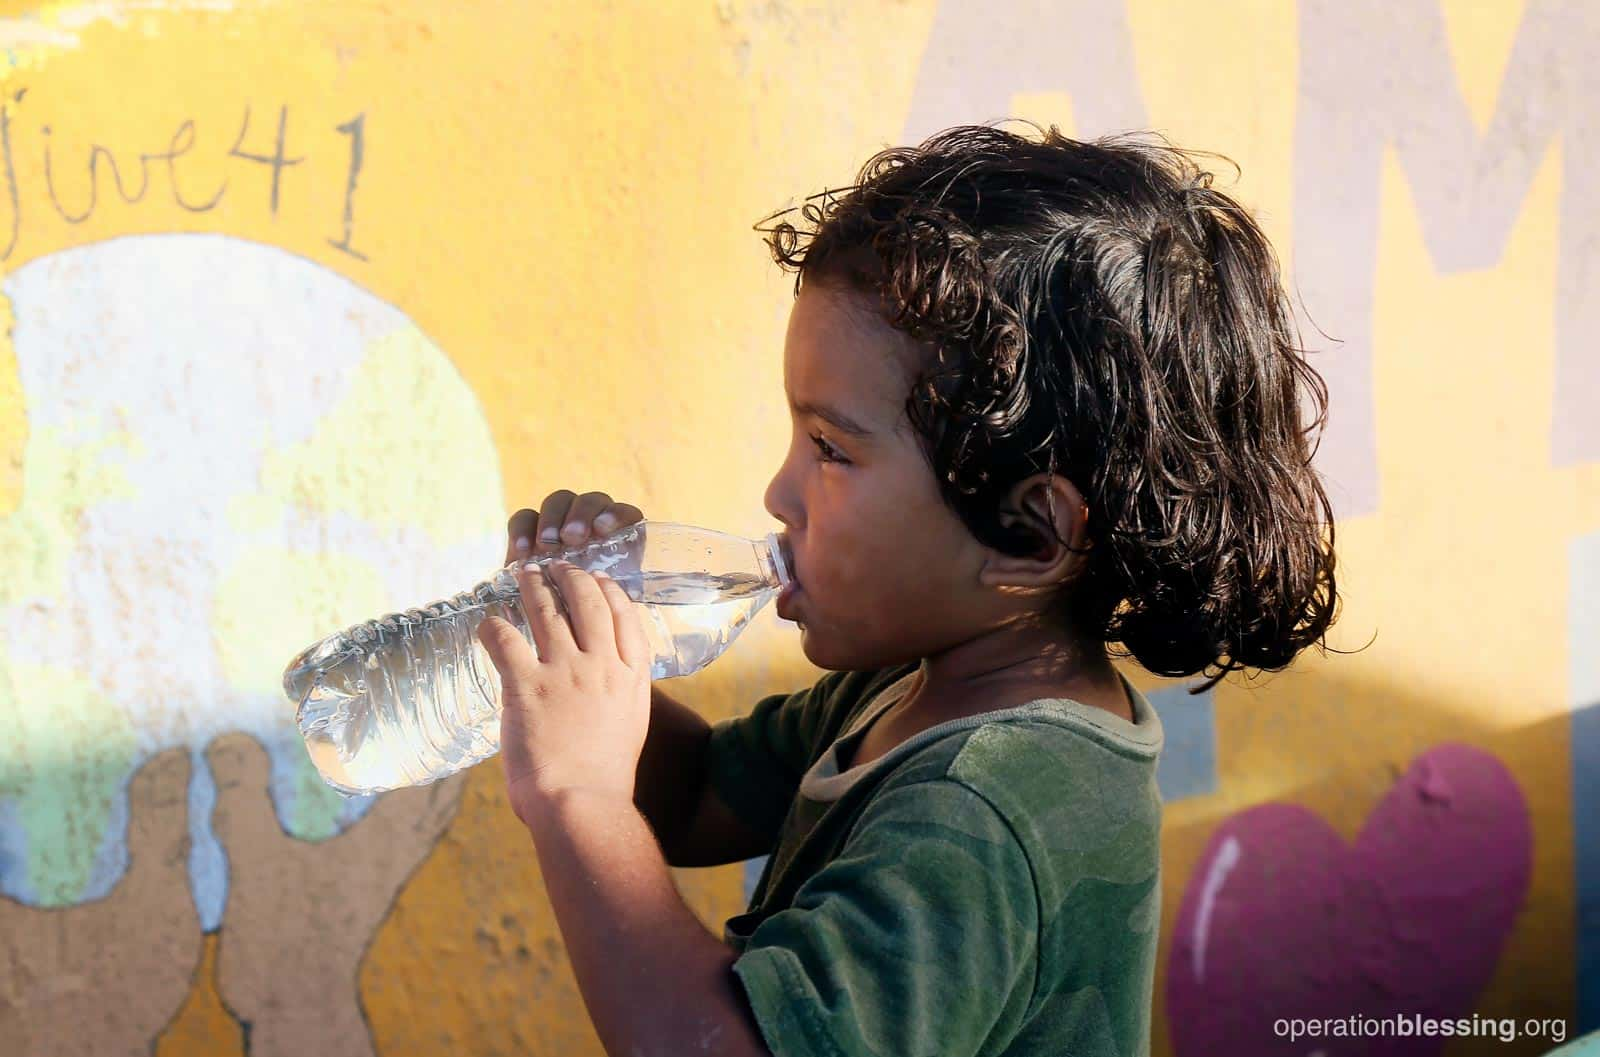 A young Puerto Rican boy drinks safe water.